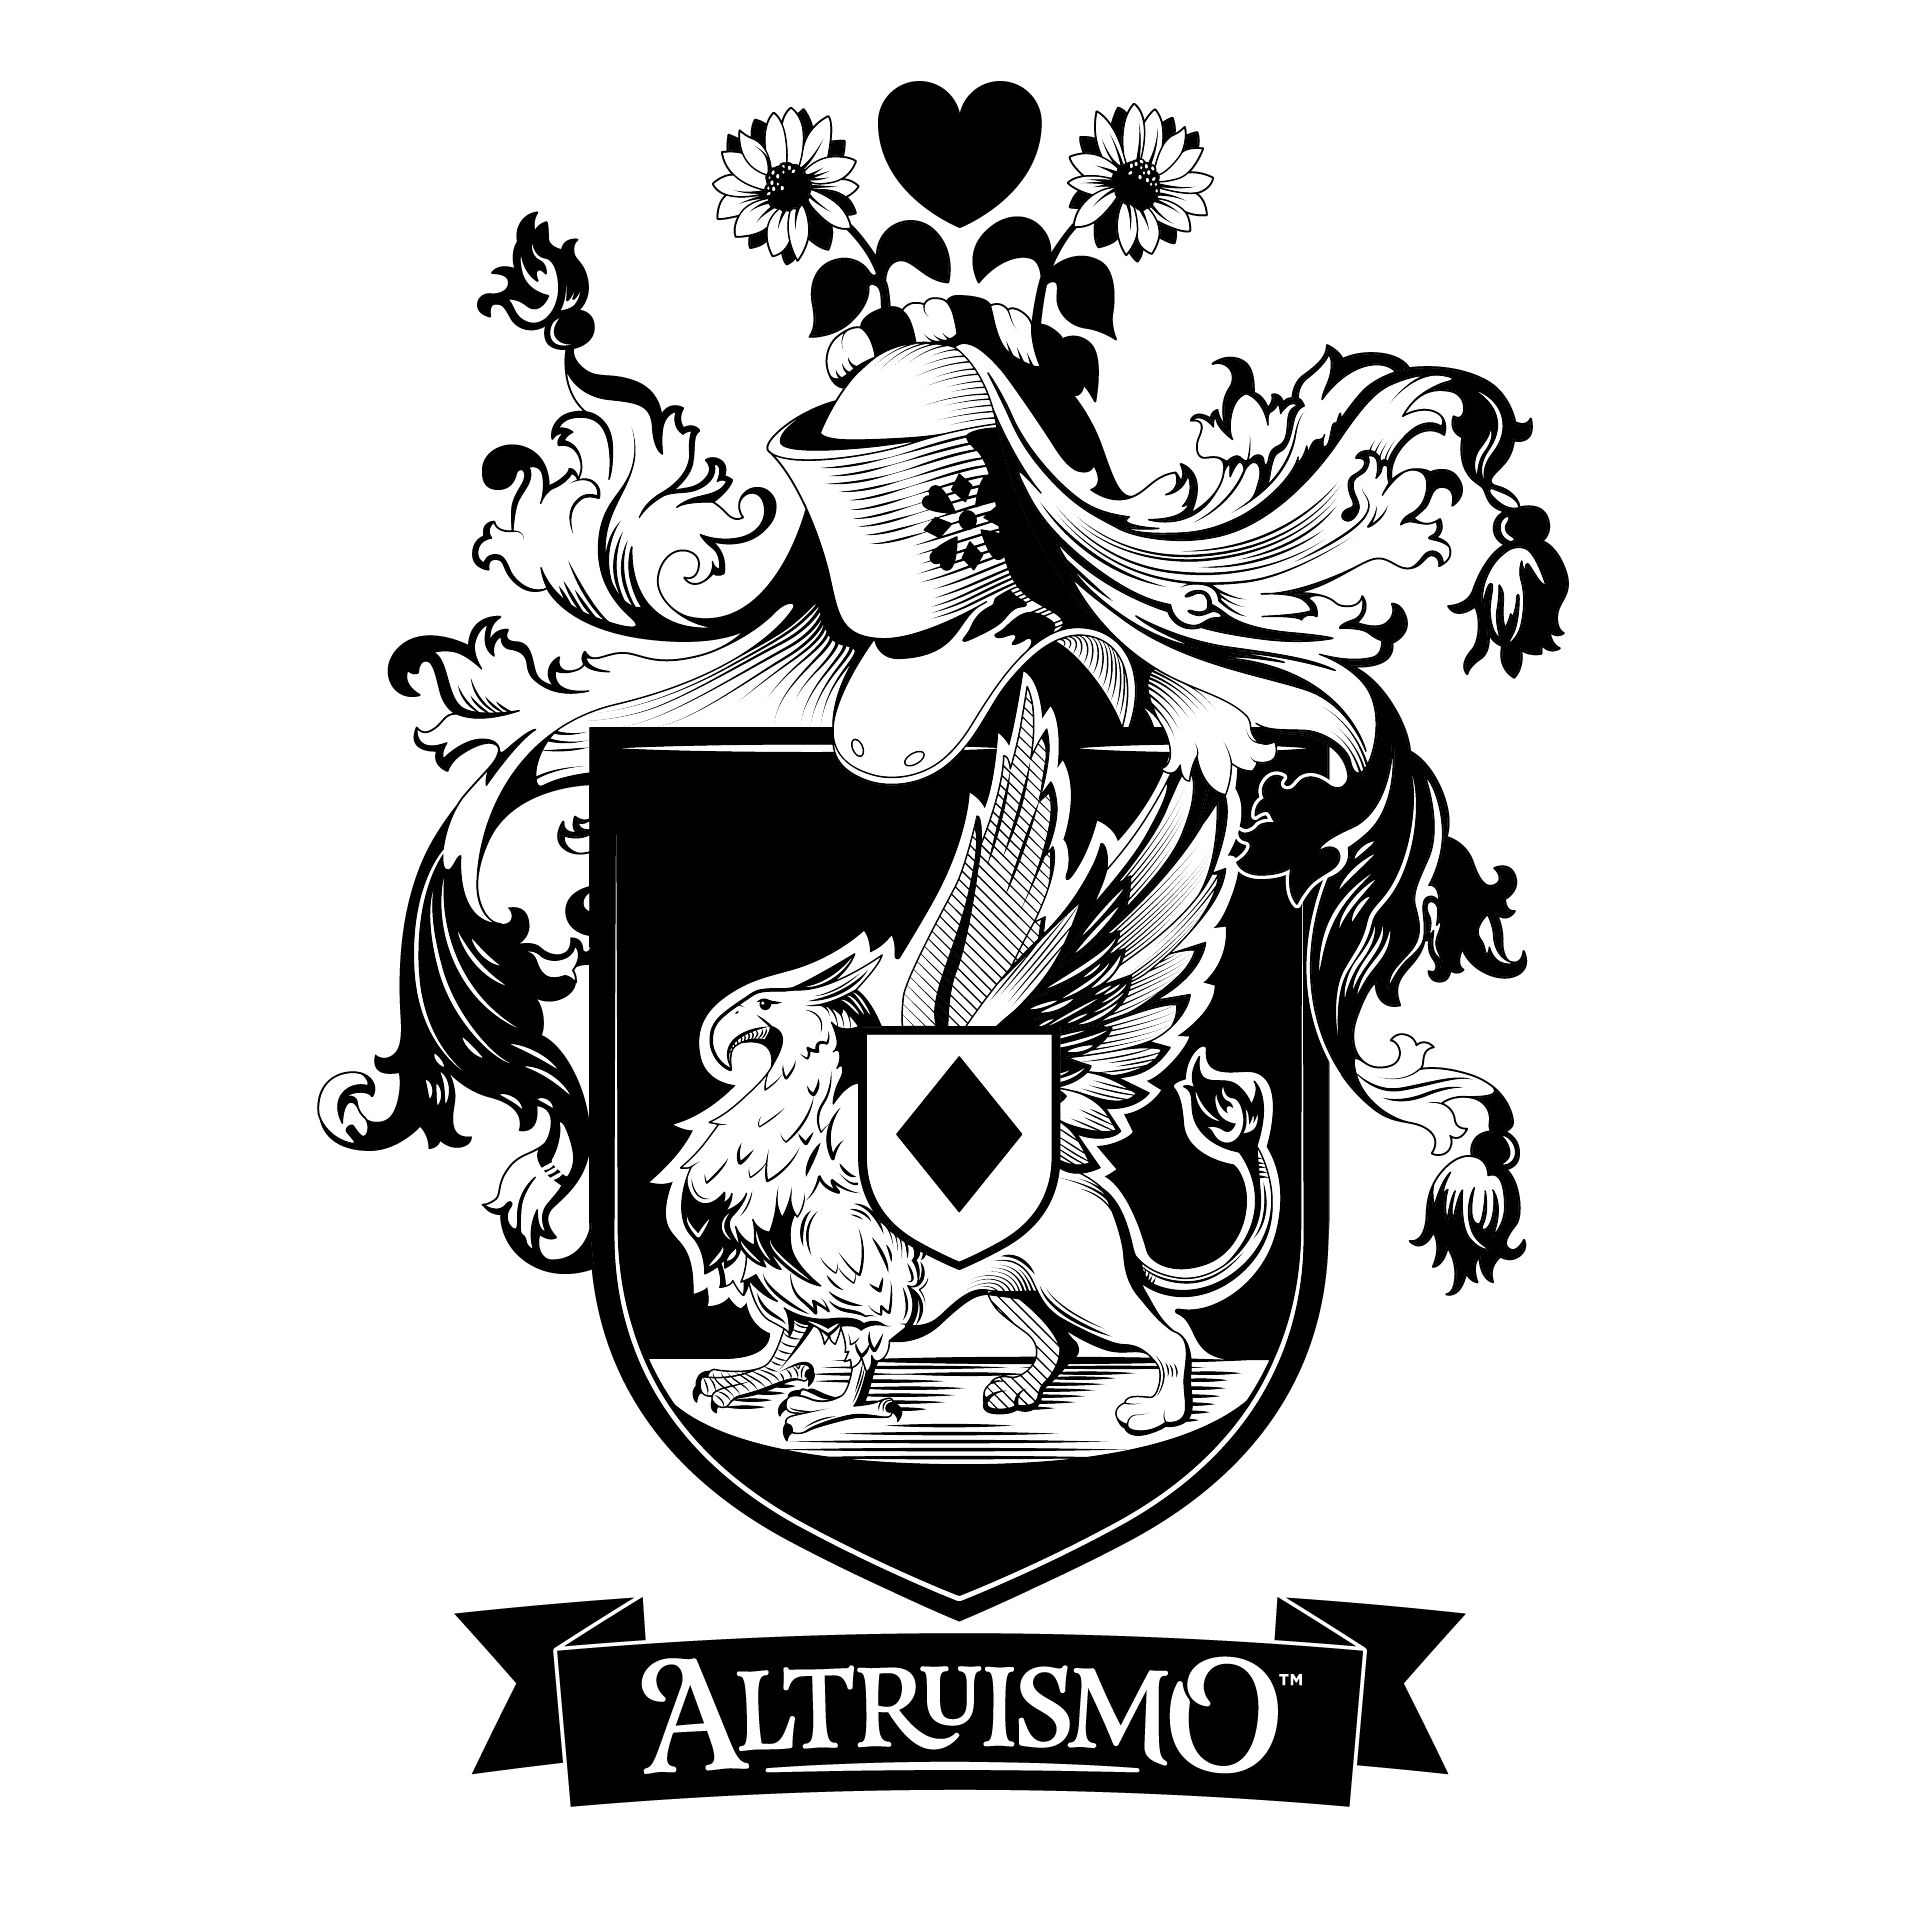 """Alturismo - Altruismo traces its origins to the rainforests of the Amazon, where a group of powerful Brazilians were given the name because of the Portuguese meaning behind it: """"the Givers."""""""